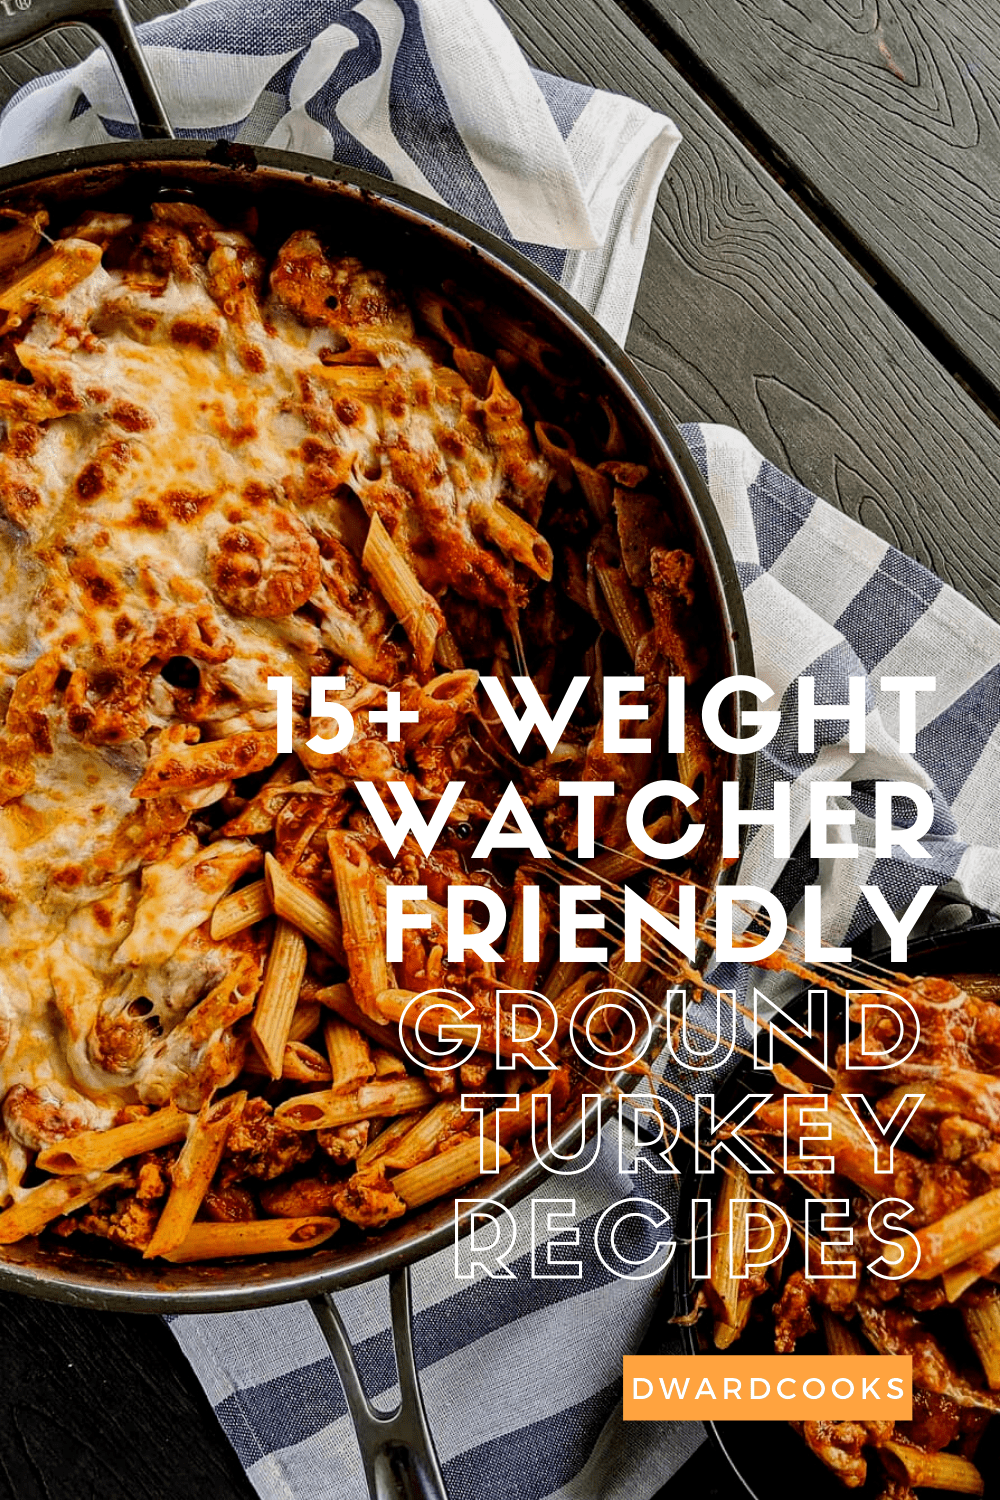 15+ Weight watcher FRIENDLY turkey recipes